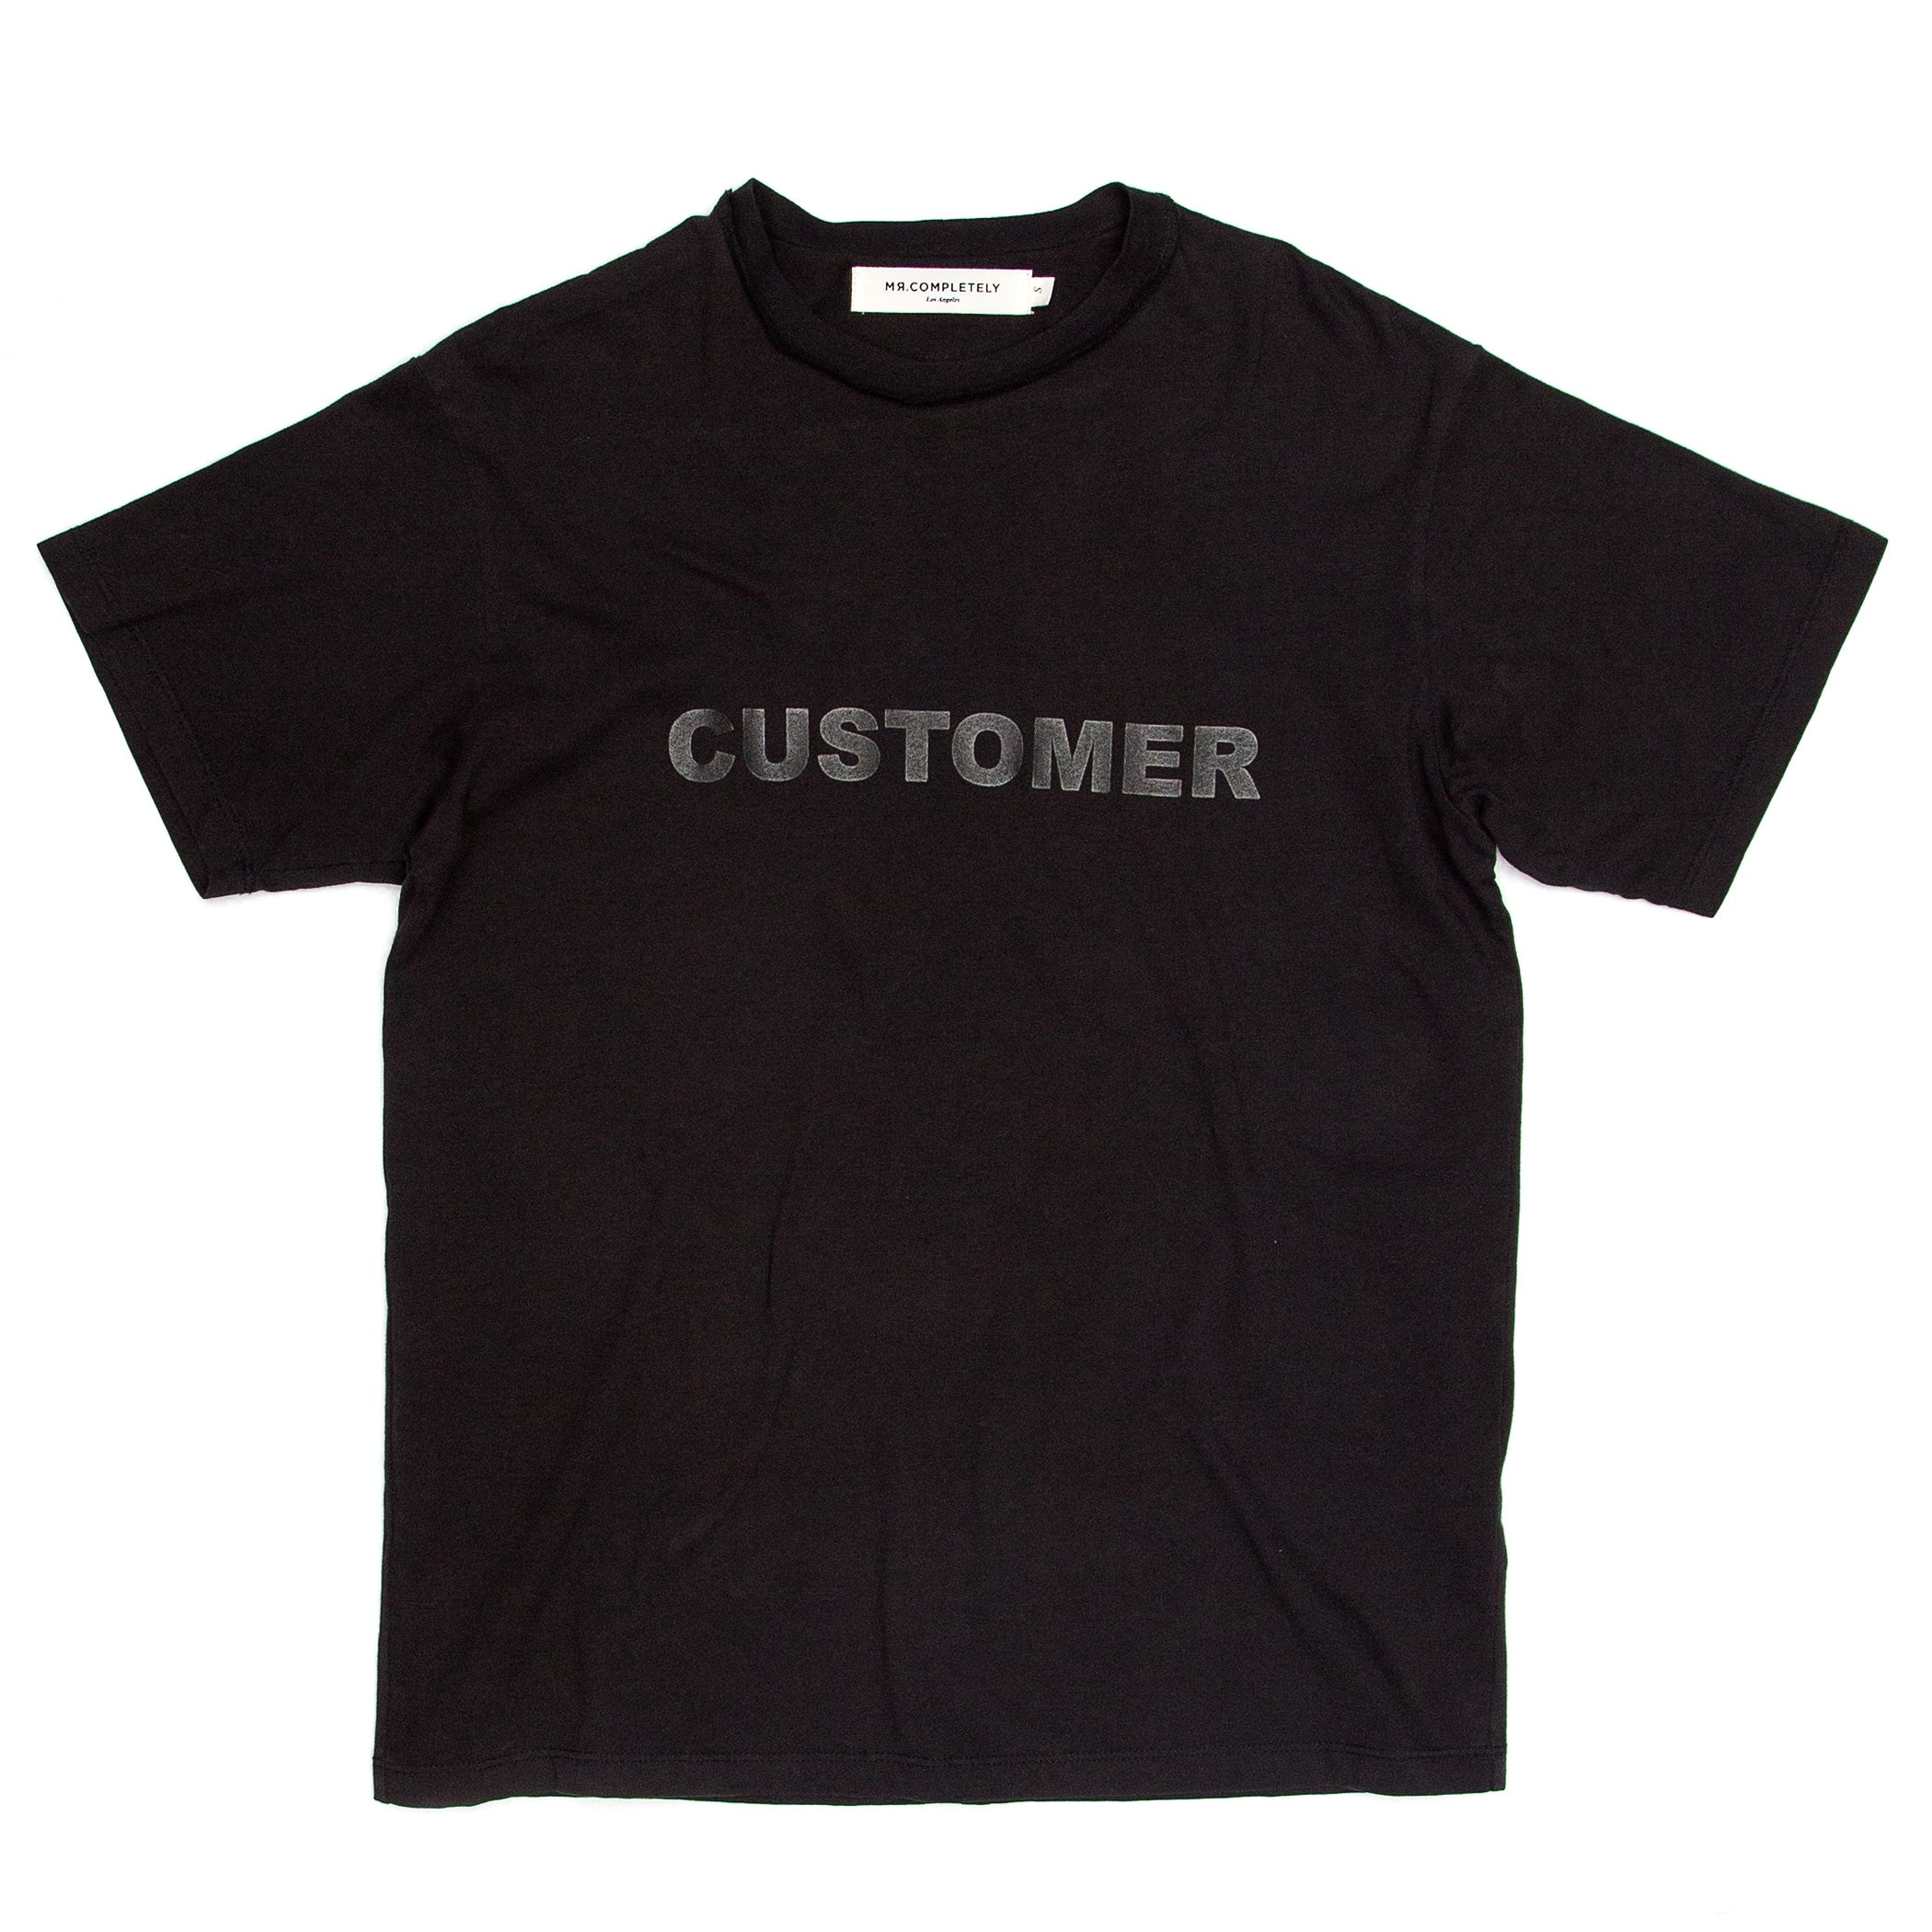 Mr. Completely - Customer Tee